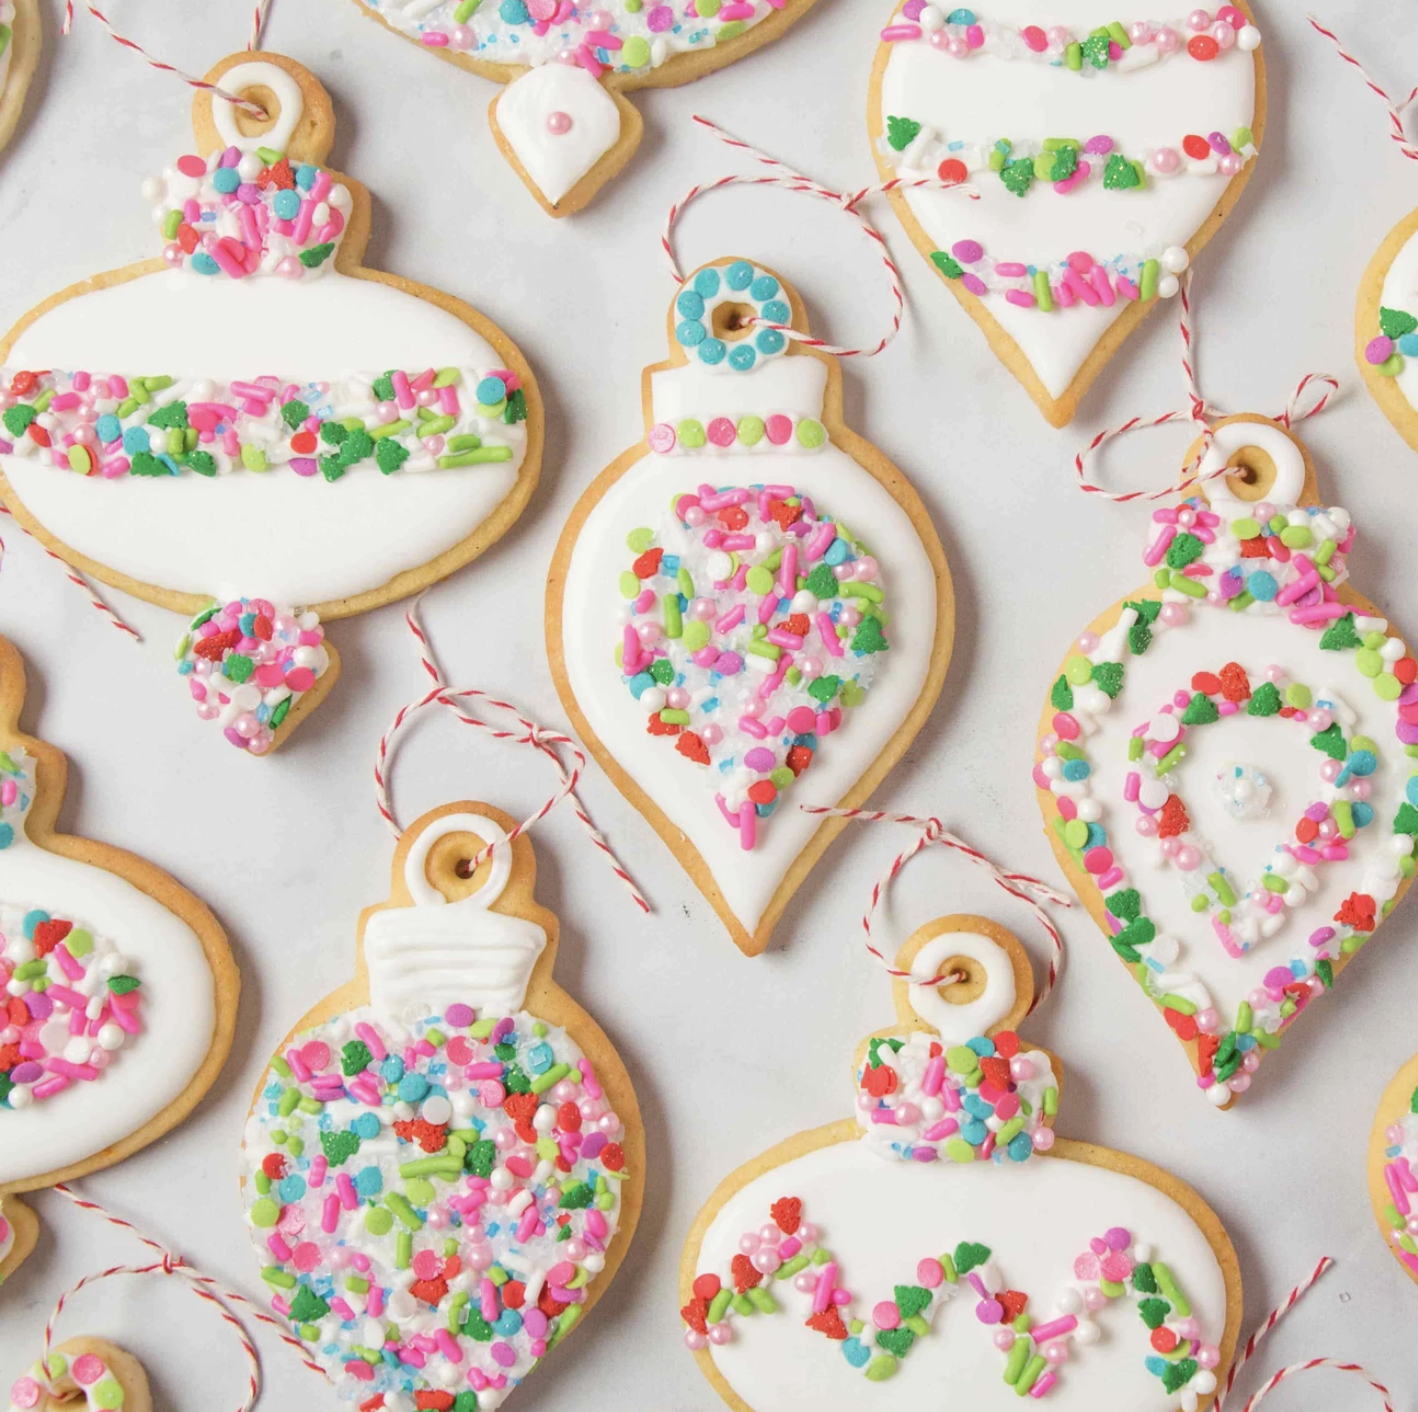 Ornament-shaped cookies with white icing and colorful sprinkles